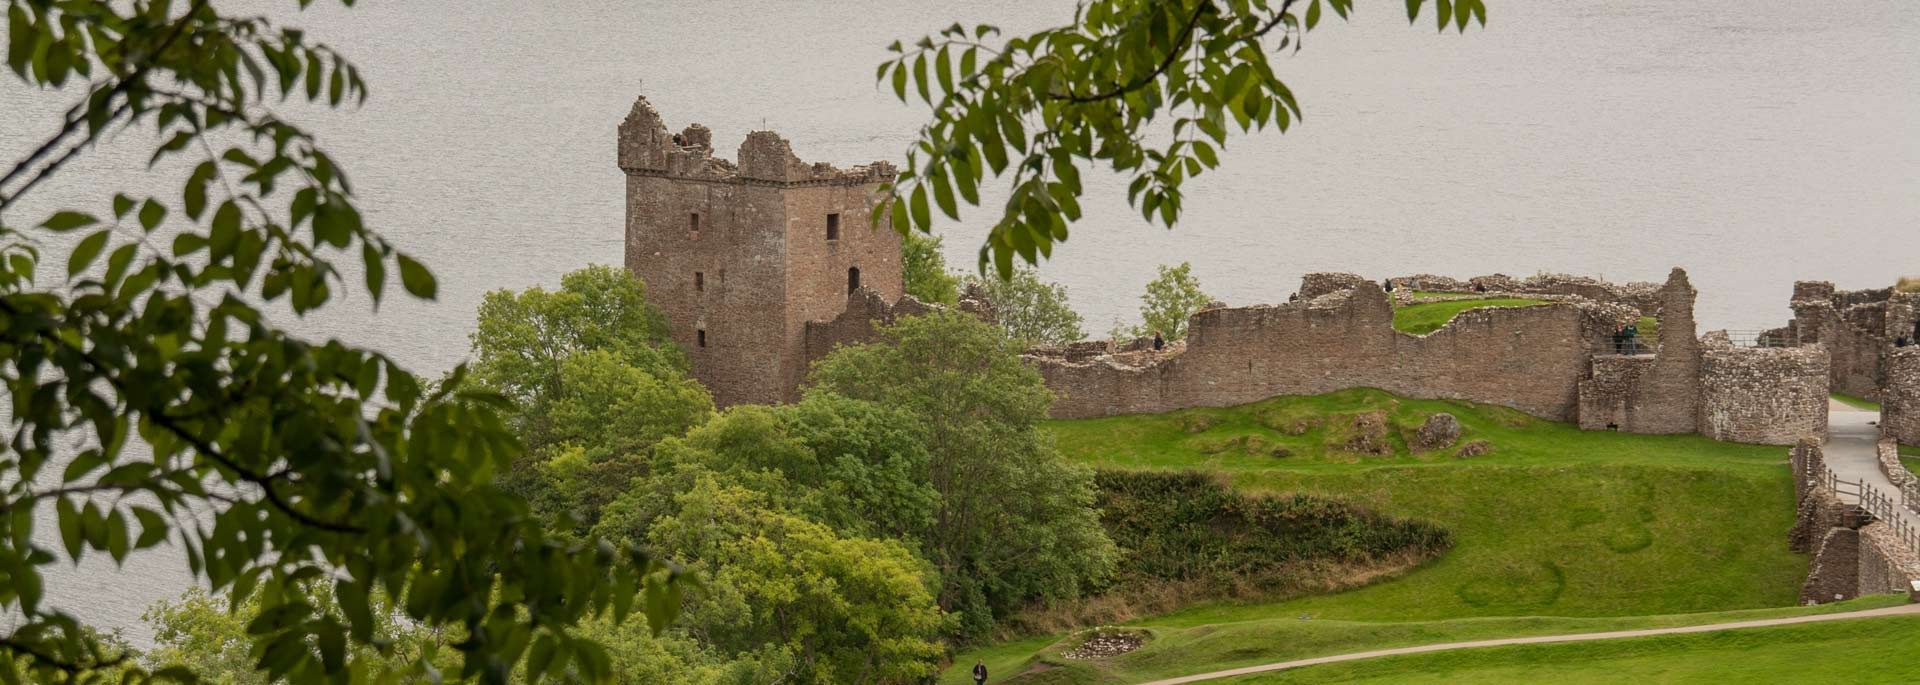 Reisetipp: Castle Hopping in Schottland